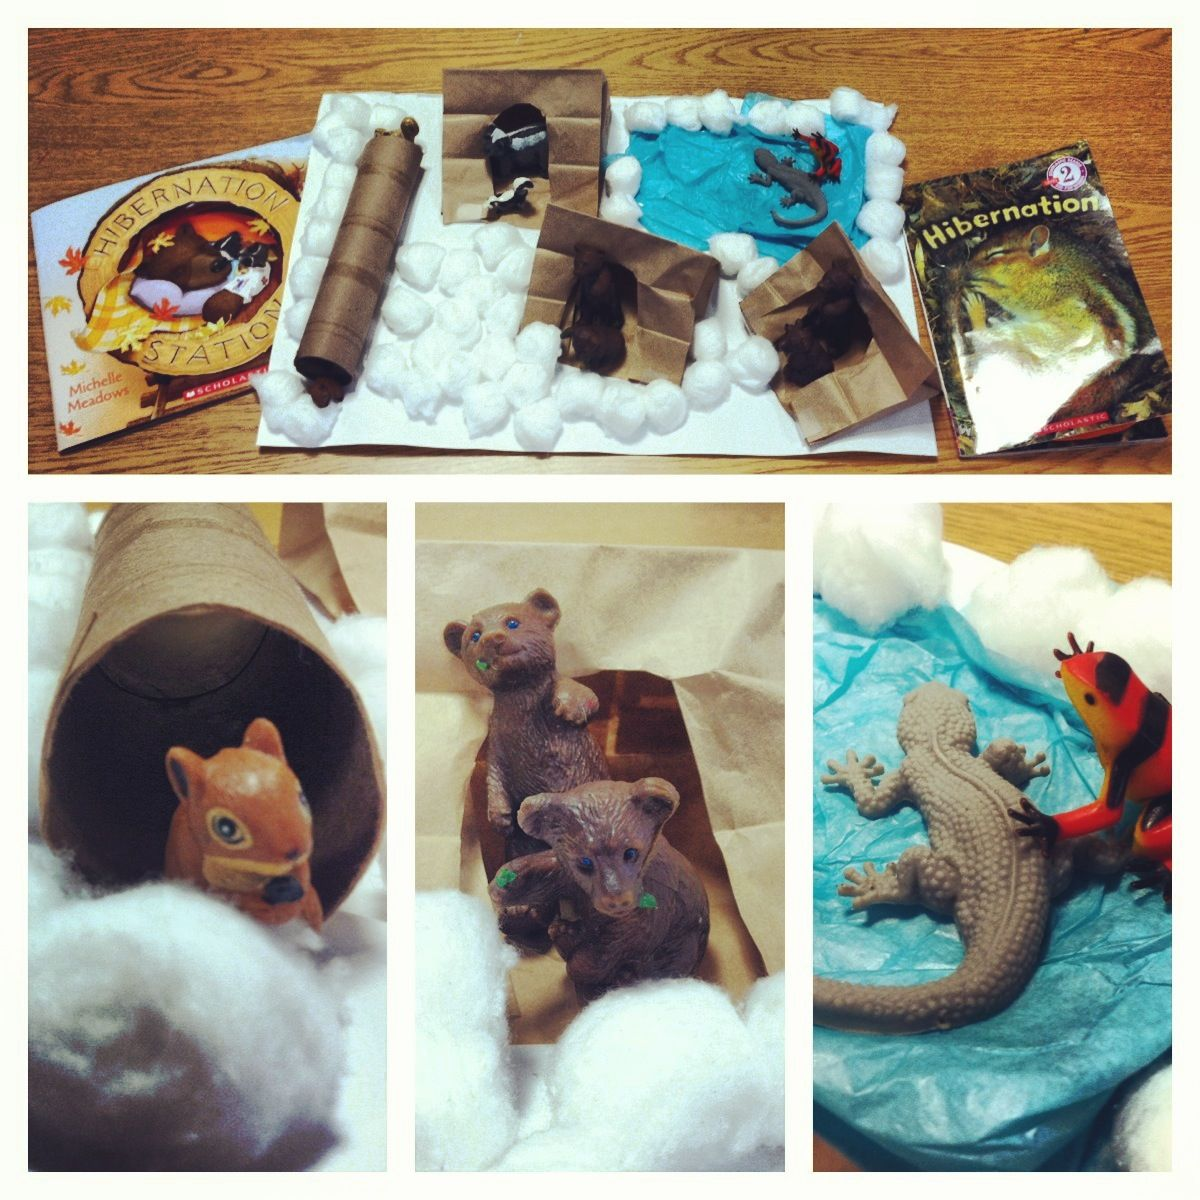 Hibernation great for preschoolers! And a great way for